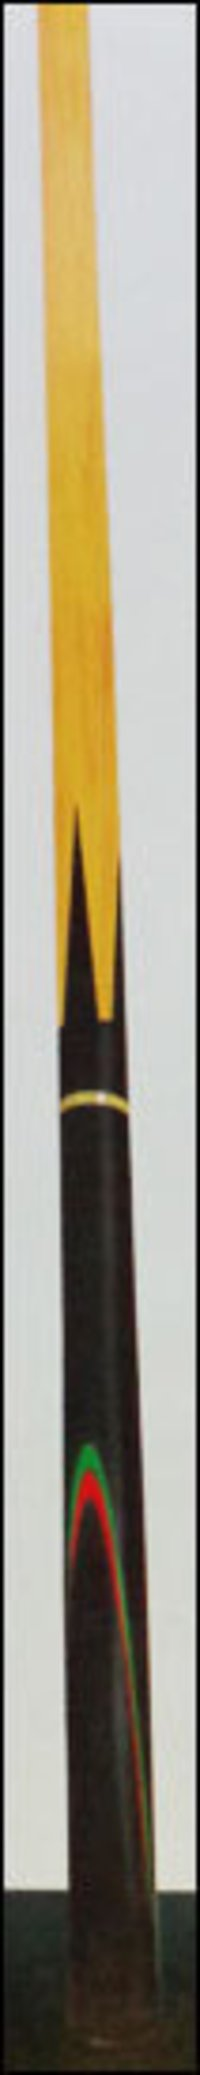 Reliable Snooker Cues